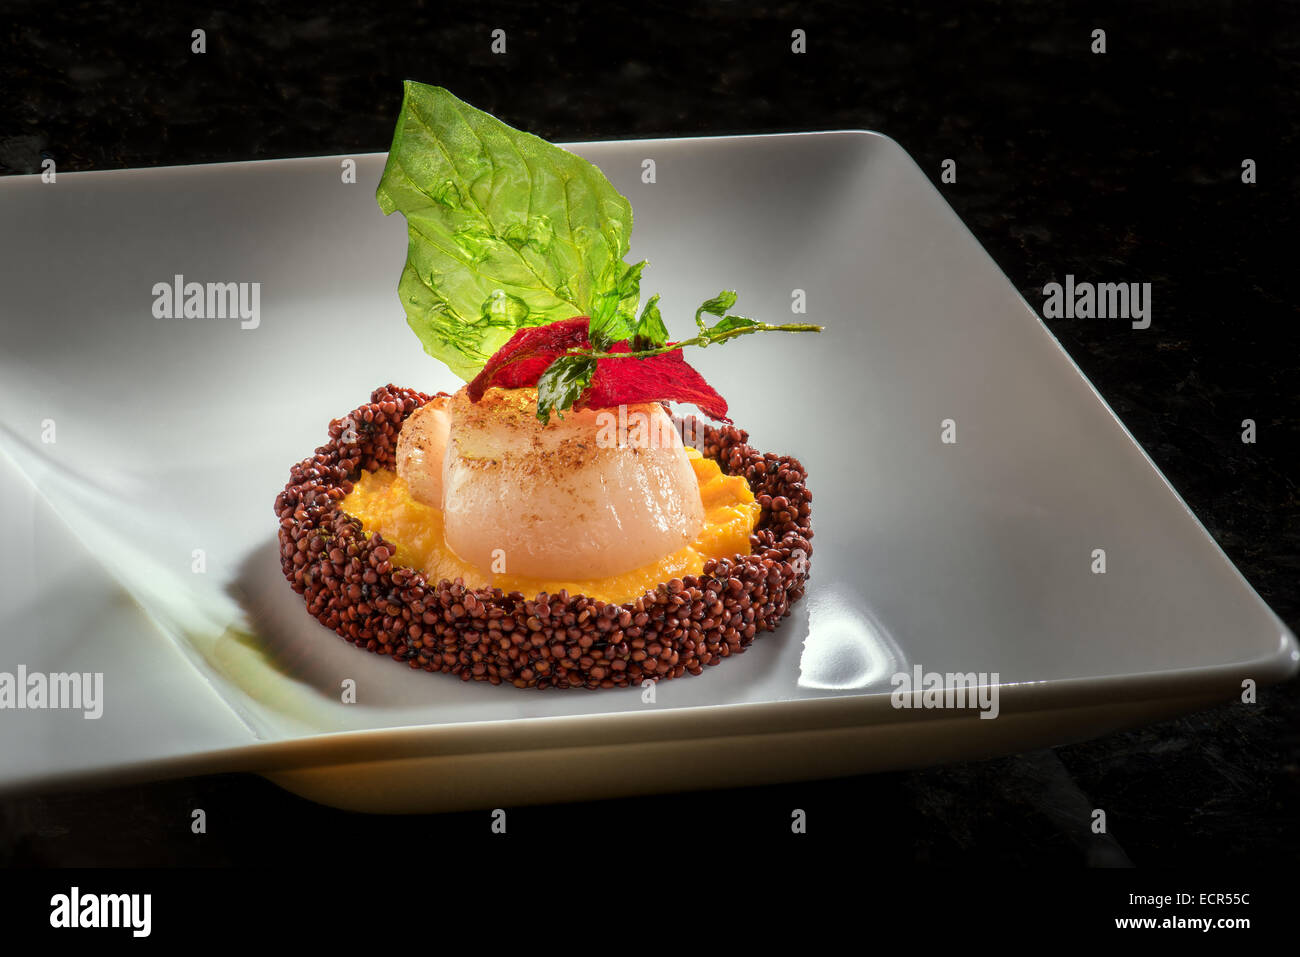 Amuse Bouche Stock Photos  Amuse Bouche Stock ImagesAlamy